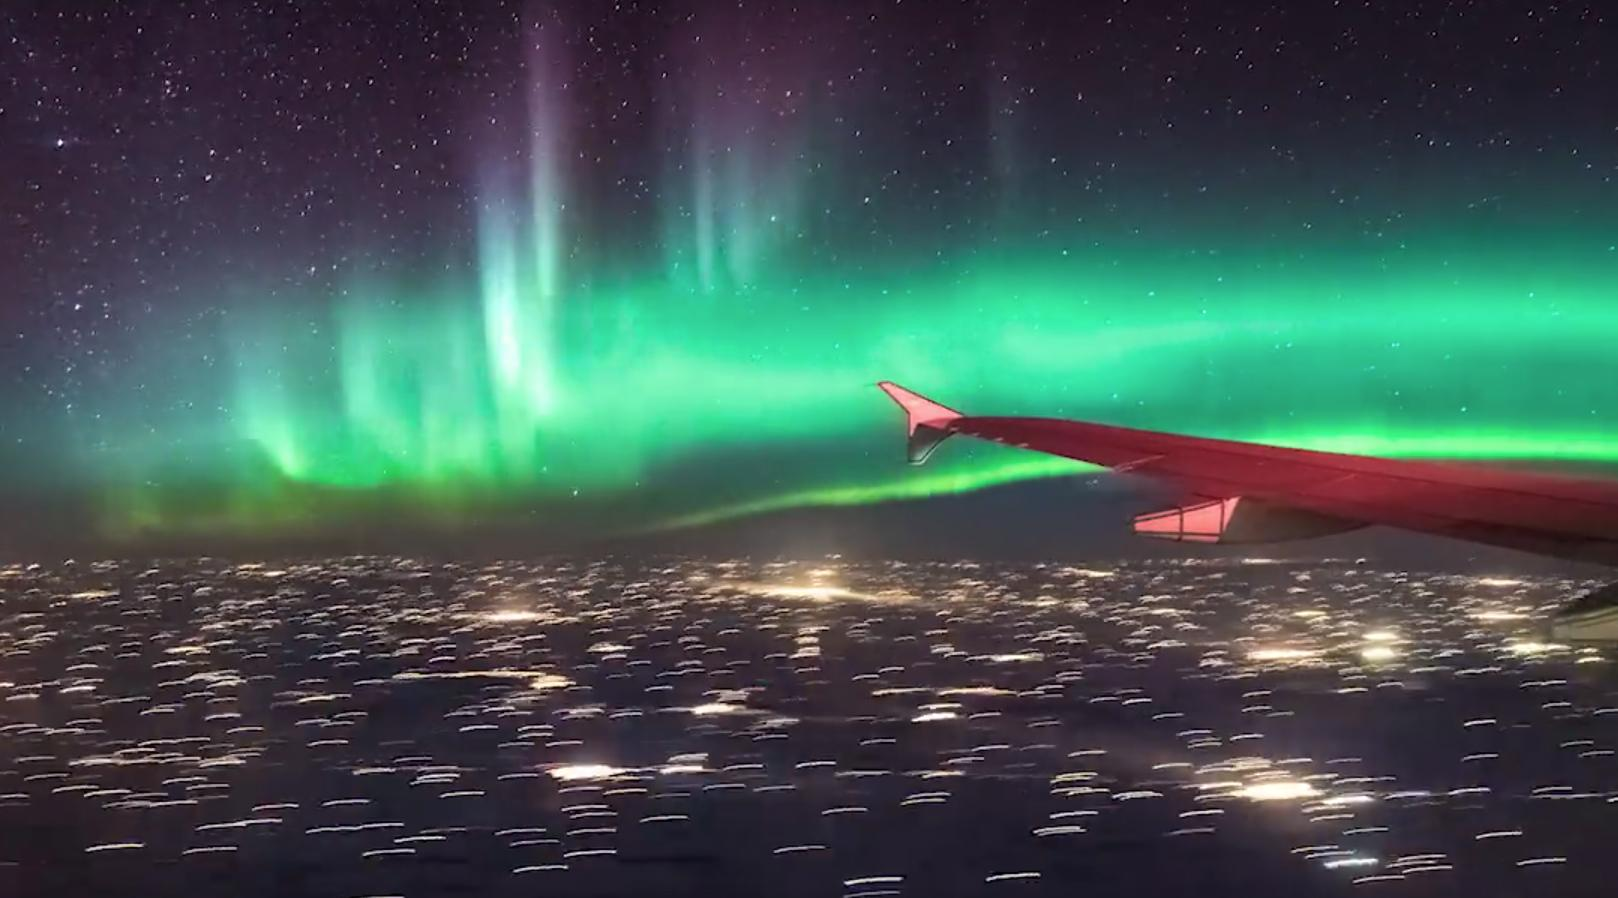 'Like flying through dreams': Canadian filmmaker shoots Northern Lights from plane (VIDEO)